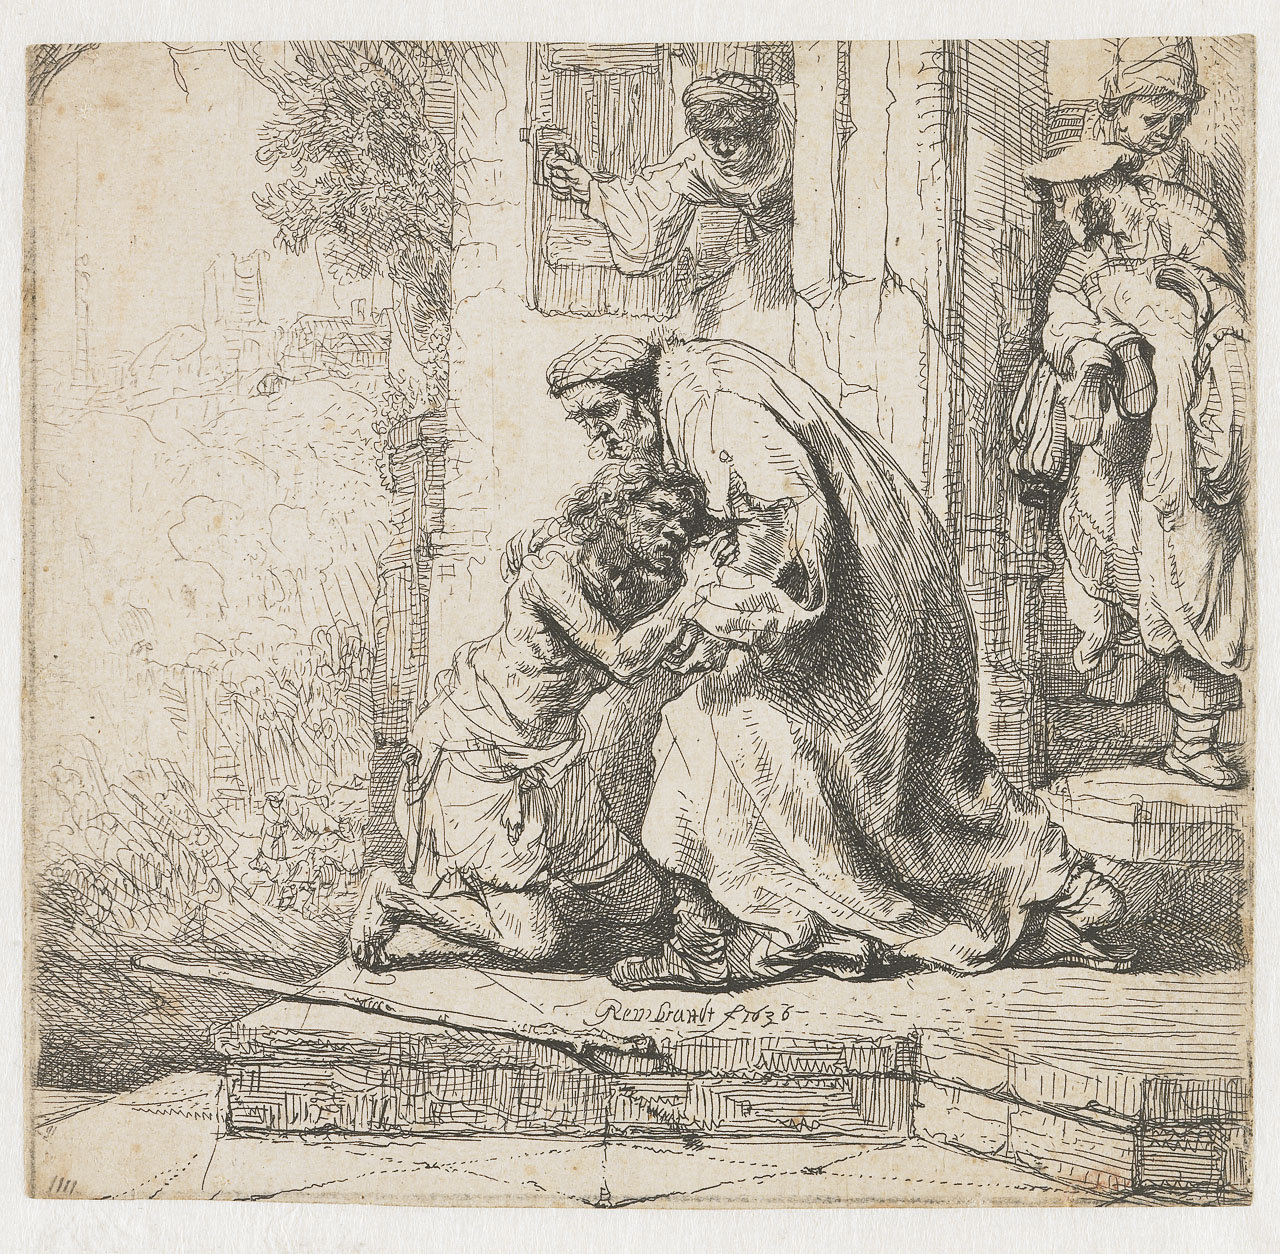 Rembrandt van Rijn - The return of the prodigal son 1636